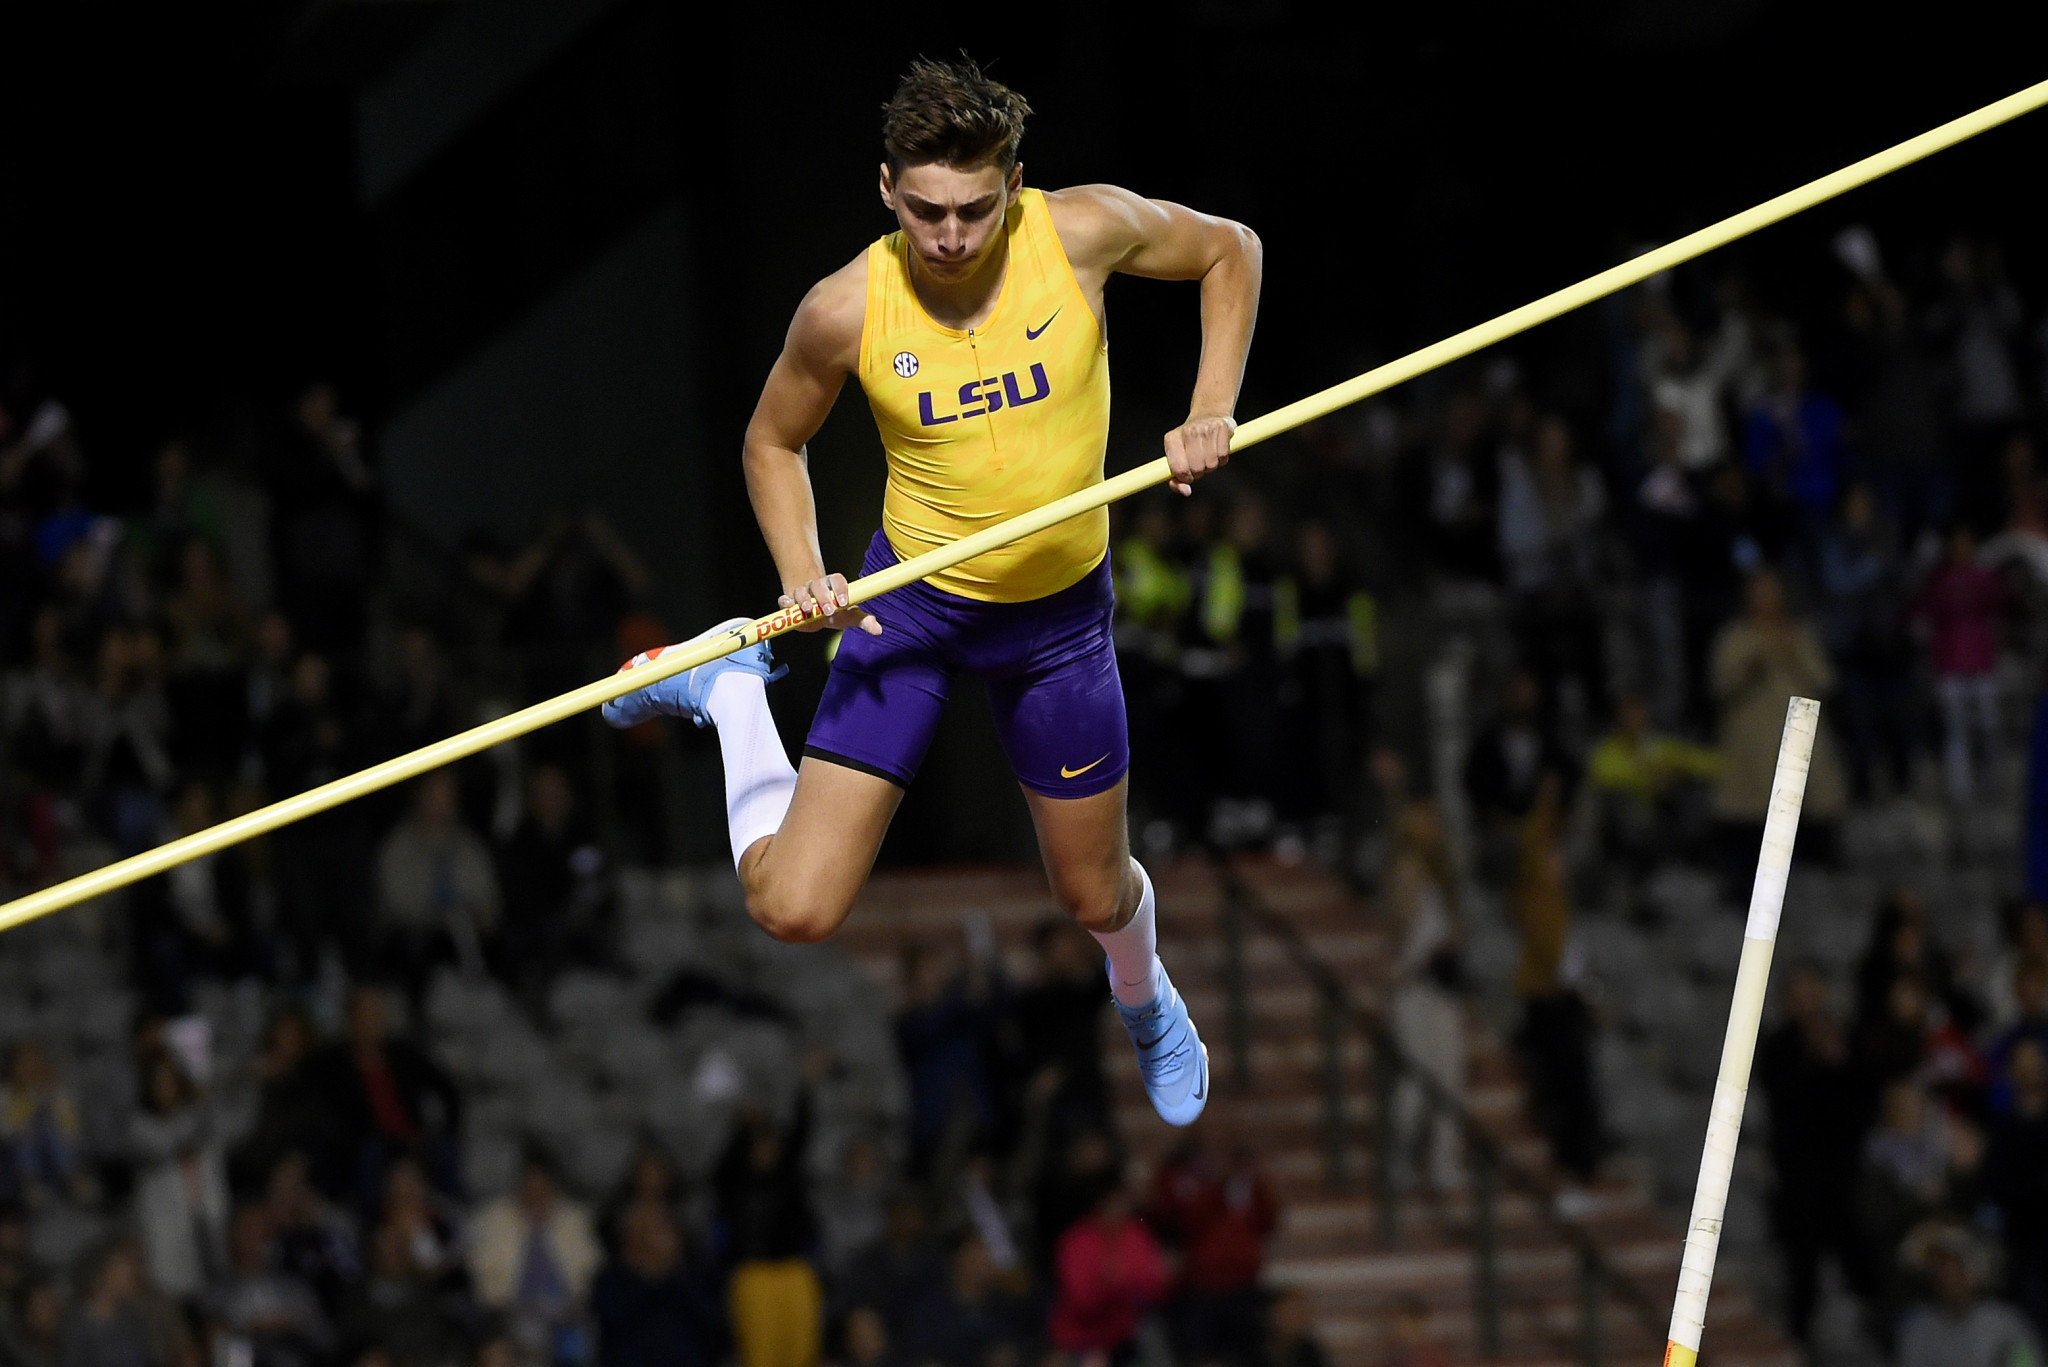 IAAF names contenders for 2018 Rising Star Awards